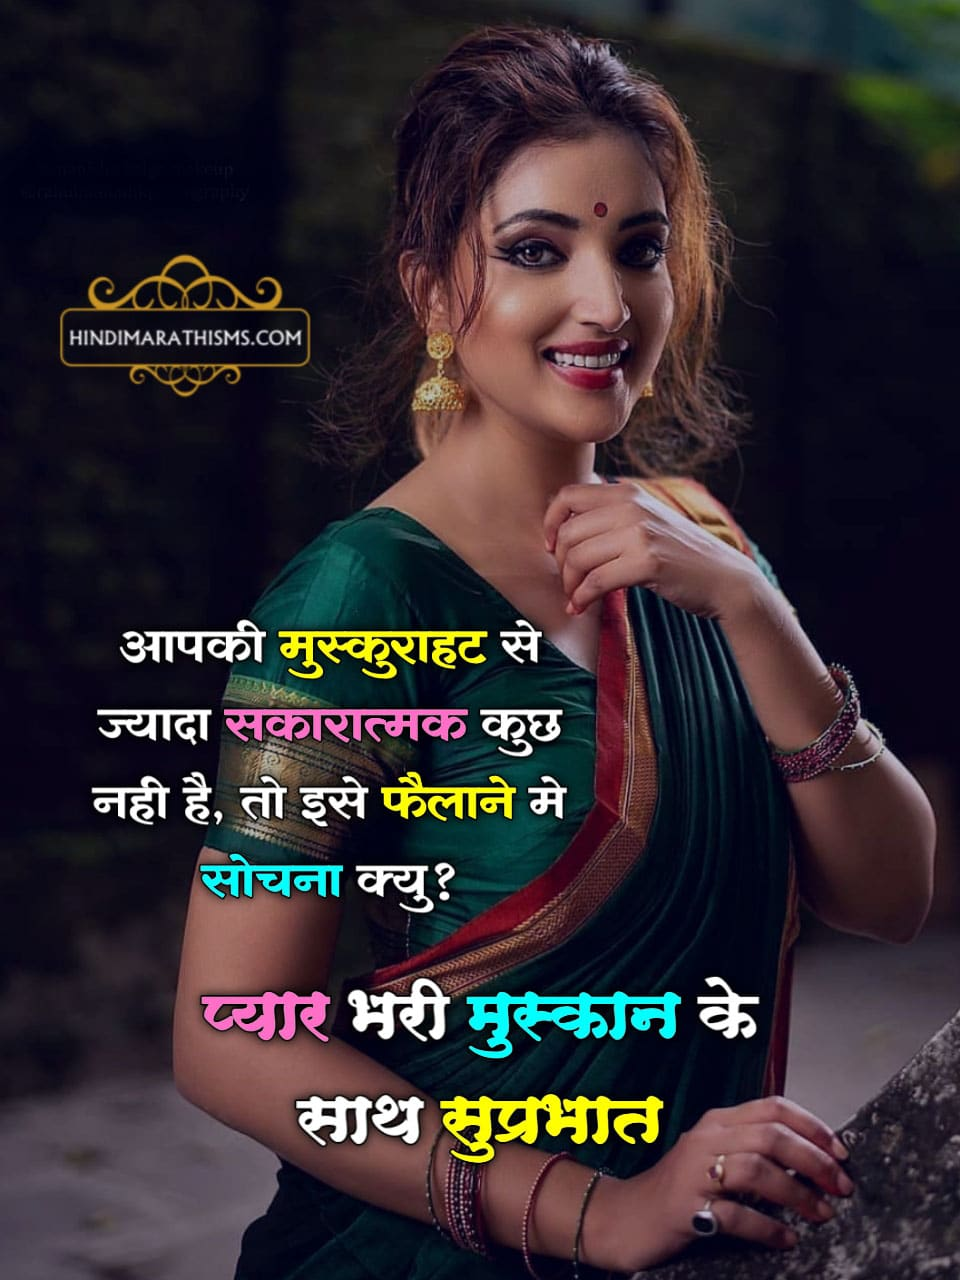 Muskurahat Shayari Good Morning